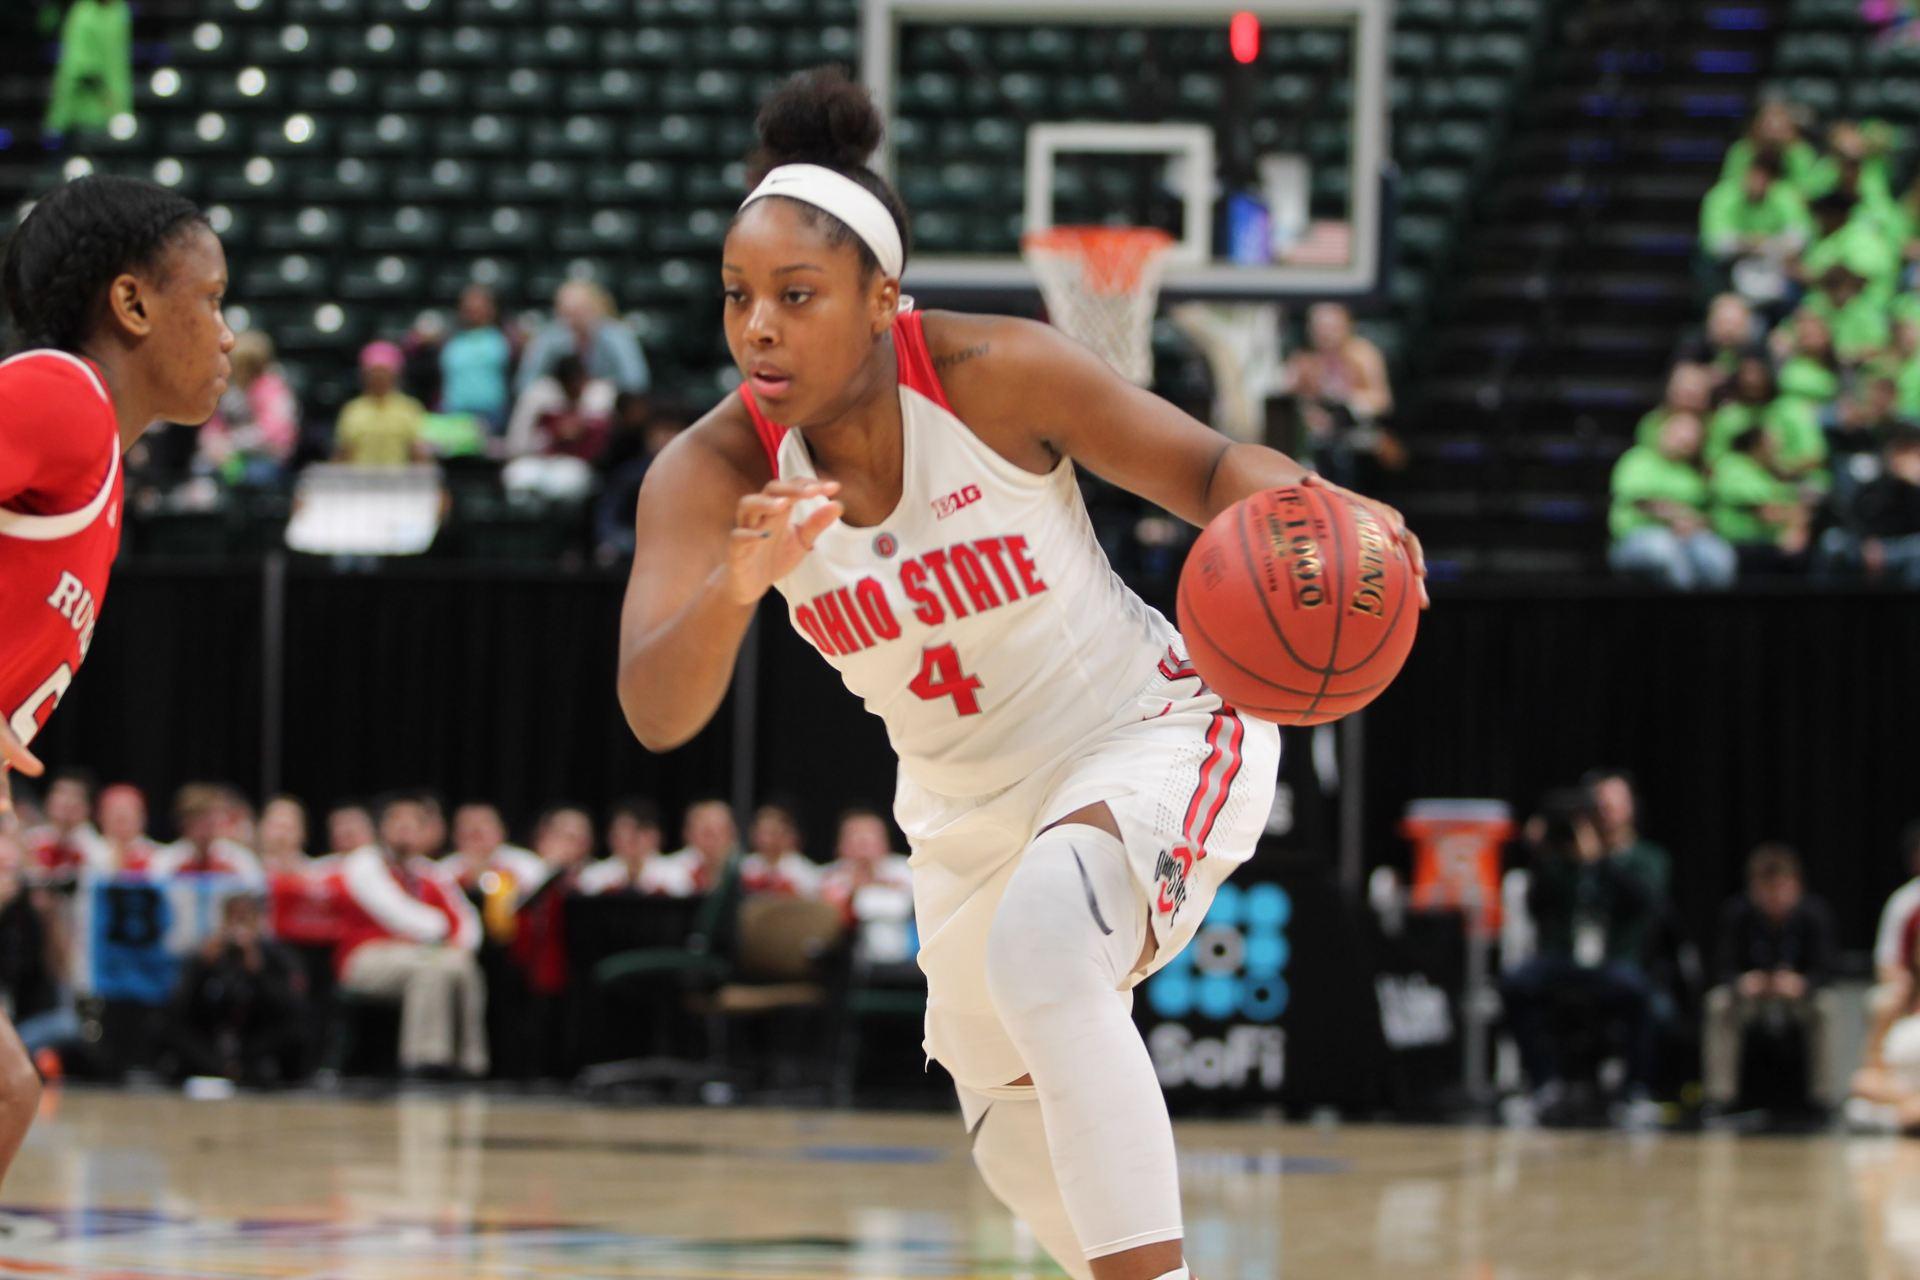 Women's Basketball: No. 13 Ohio State beats Rutgers 82-57 ...